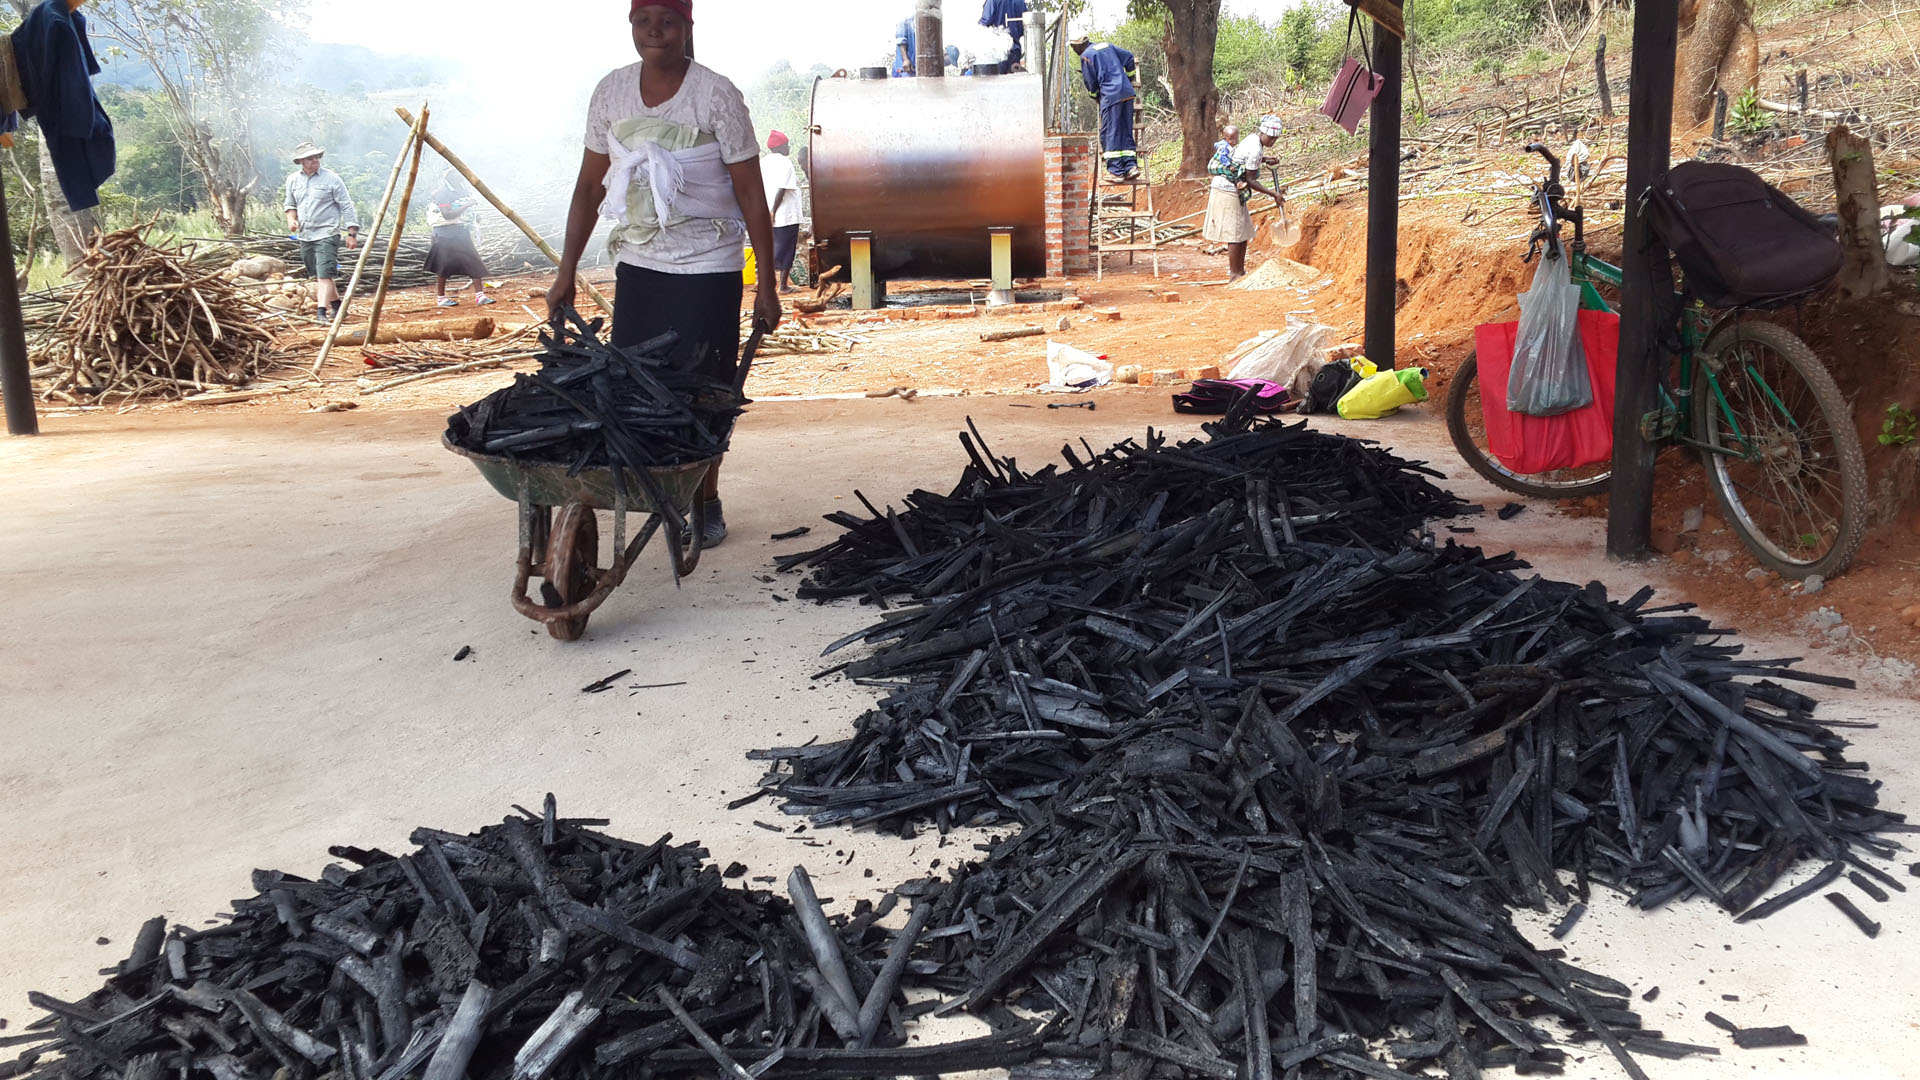 Bamboo charcoal production at Sagambe, Honde Valley